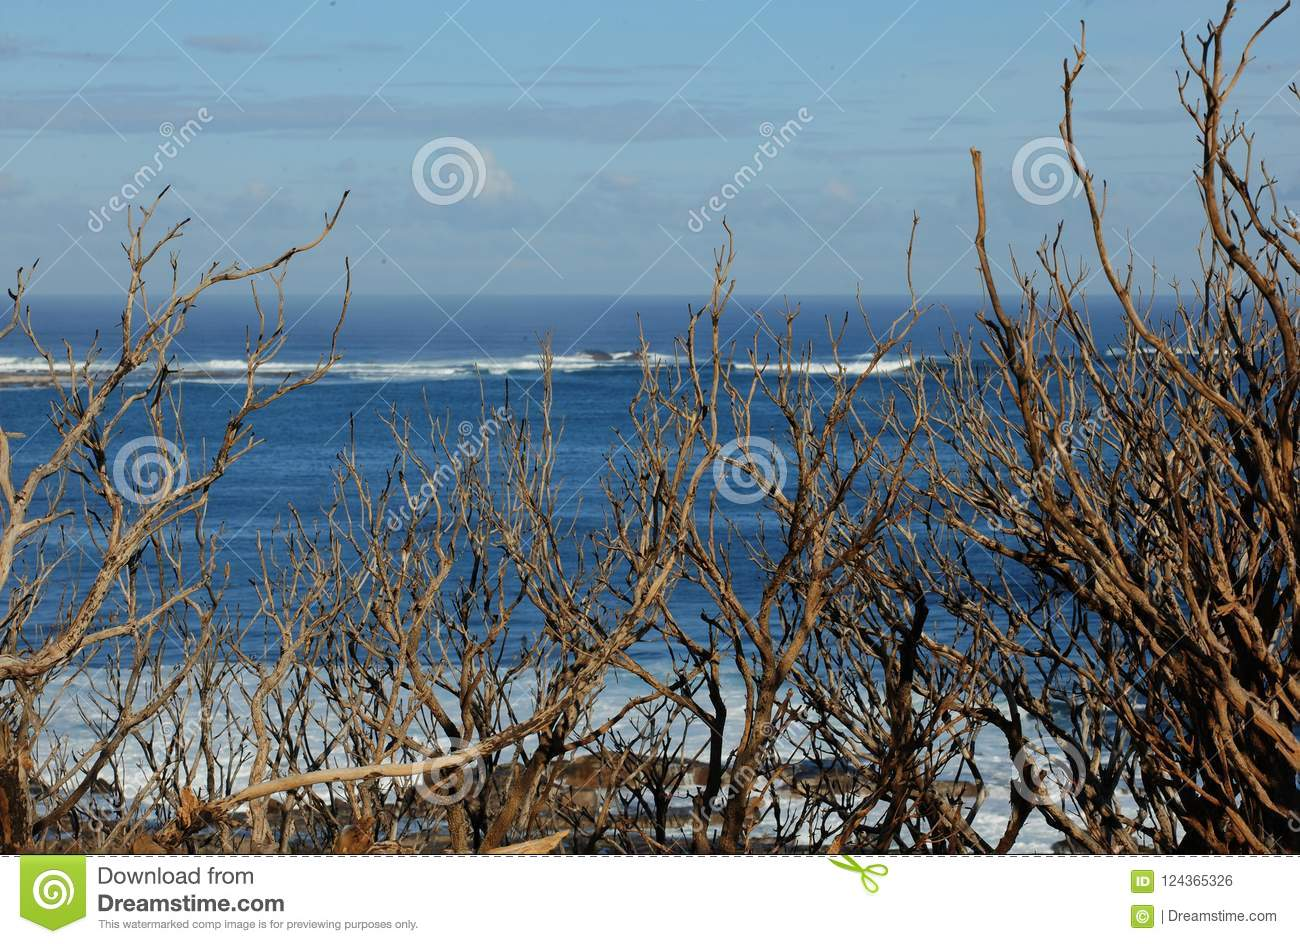 Generic scene of a beach with waves breaking.